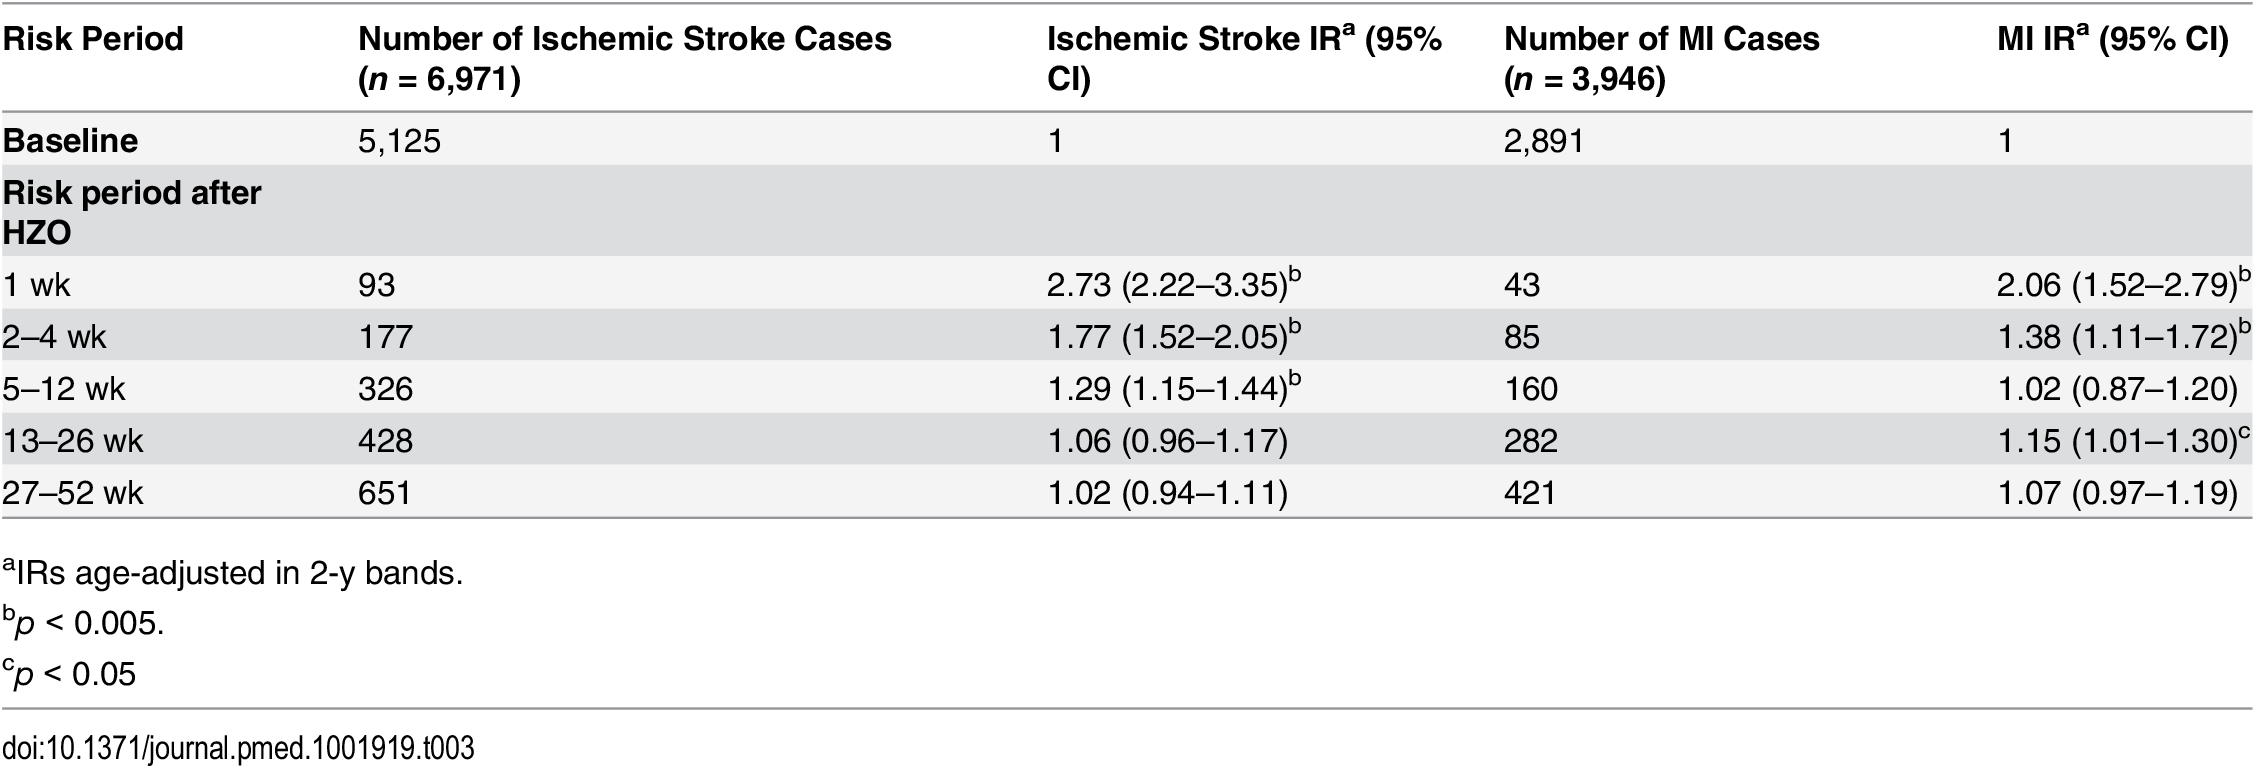 Age-adjusted incidence ratios for ischemic stroke and myocardial infarction in risk periods after herpes zoster ophthalmicus.